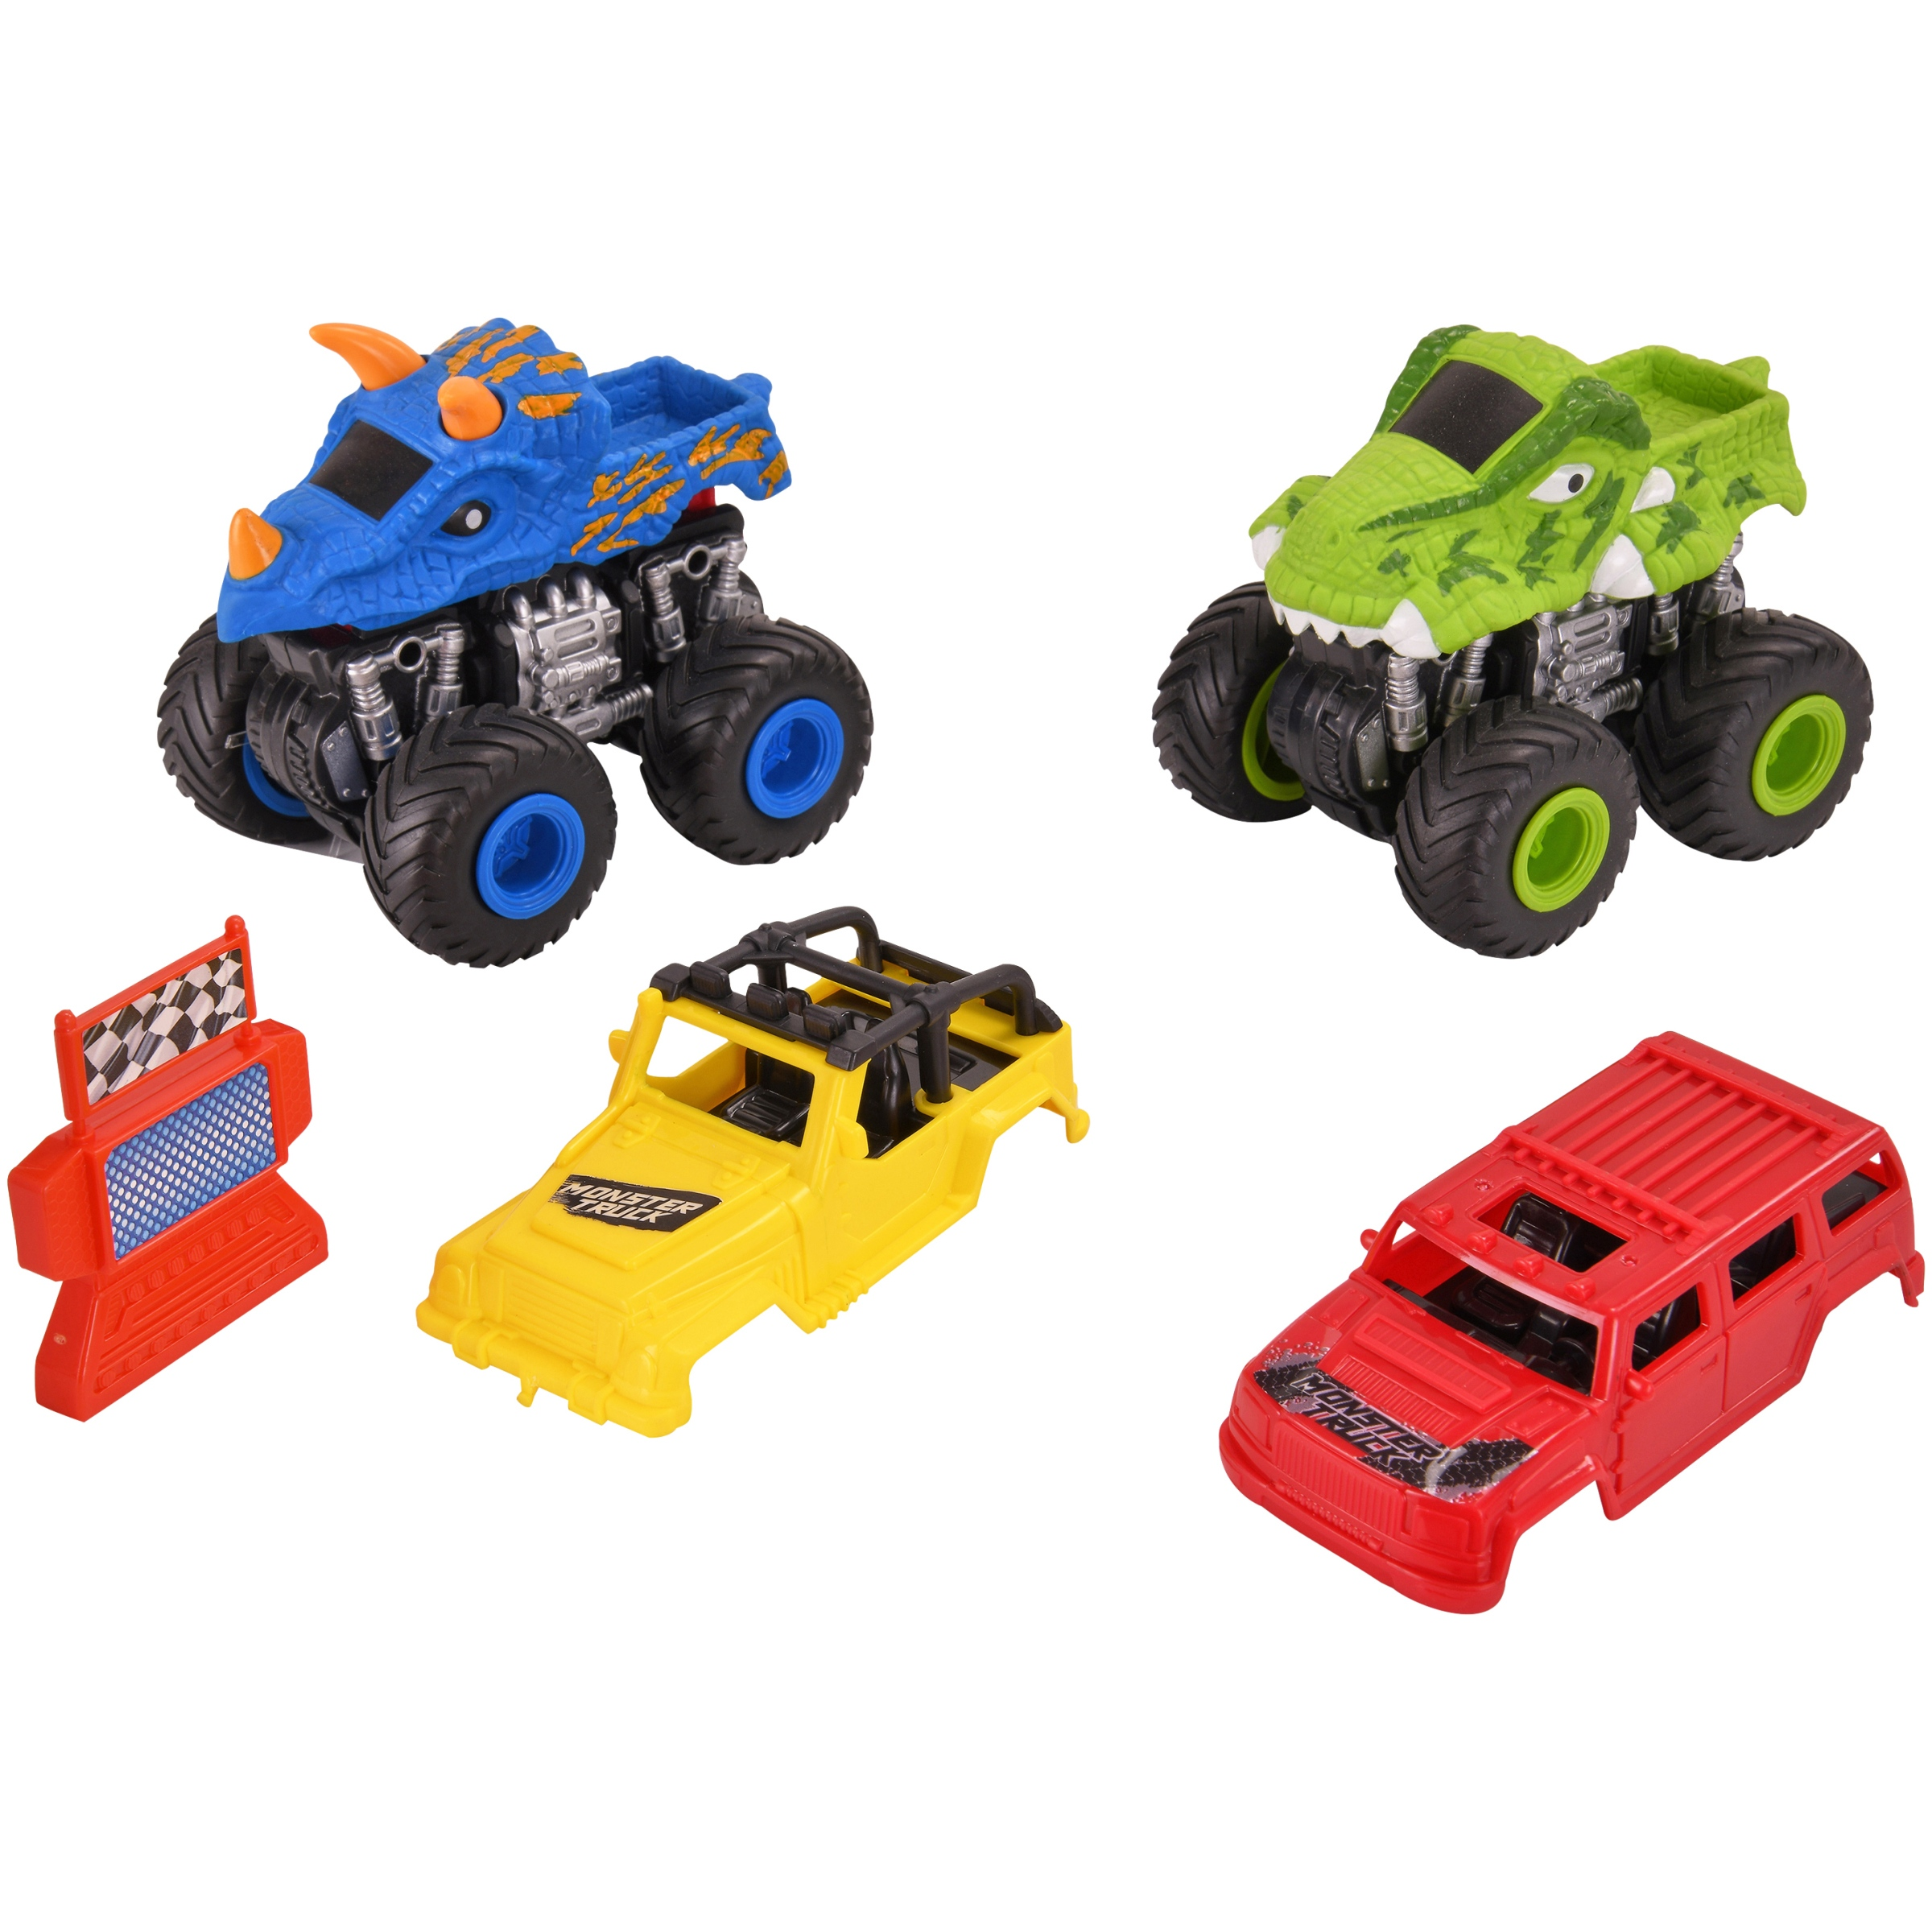 Kid Connection 7-Piece Friction Powered Monster Truck Play Set, Blue & Green